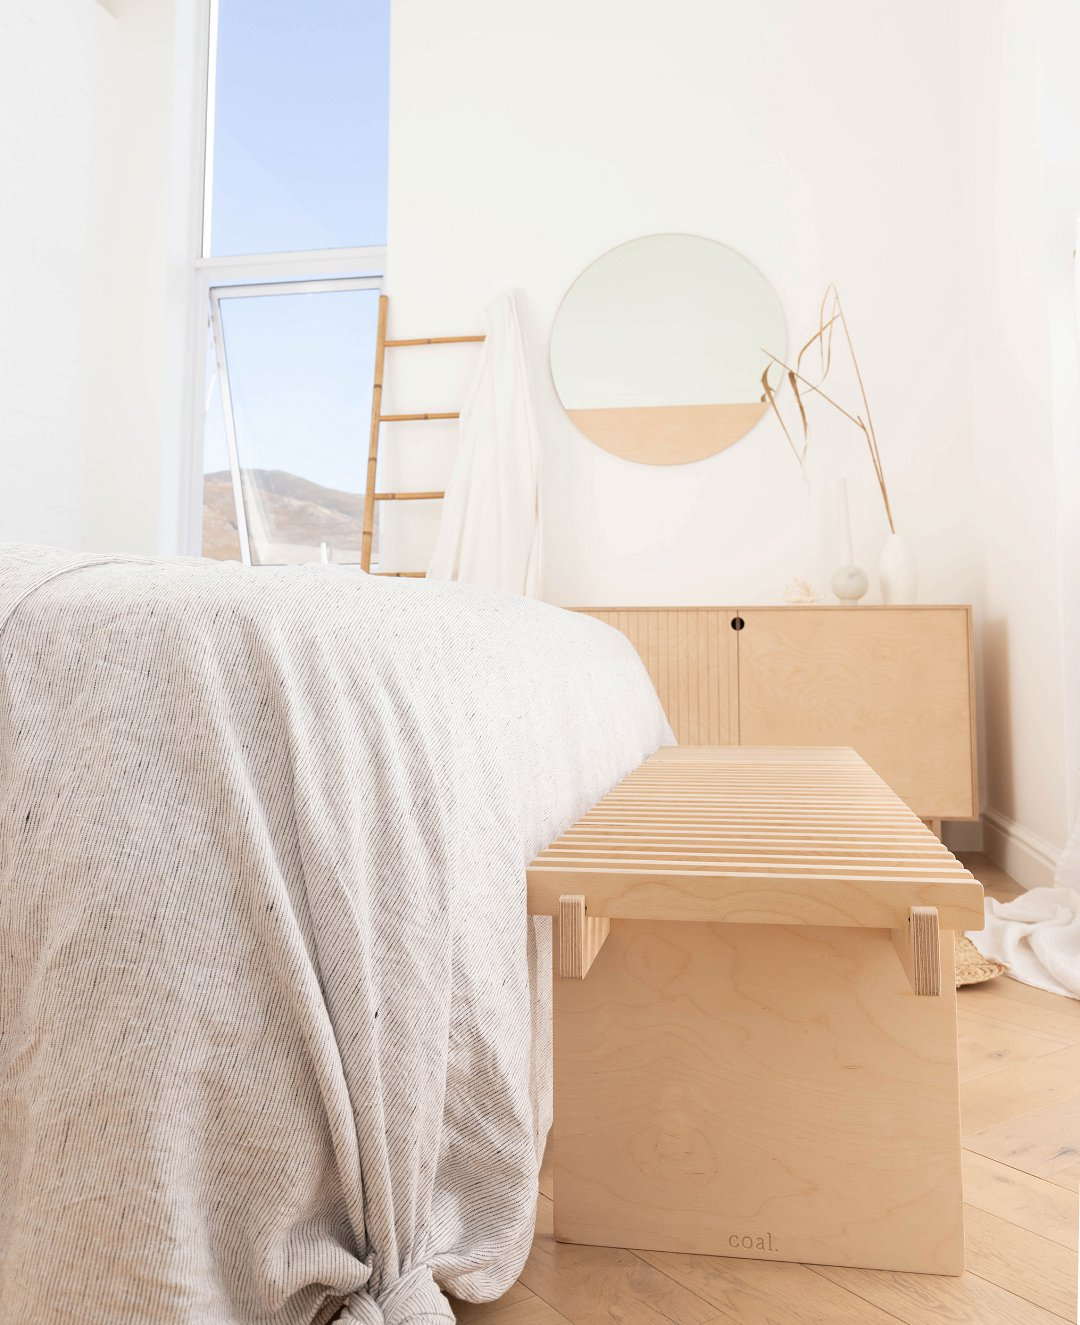 Simple furniture, locally designed and made in Cape Town, South Africa